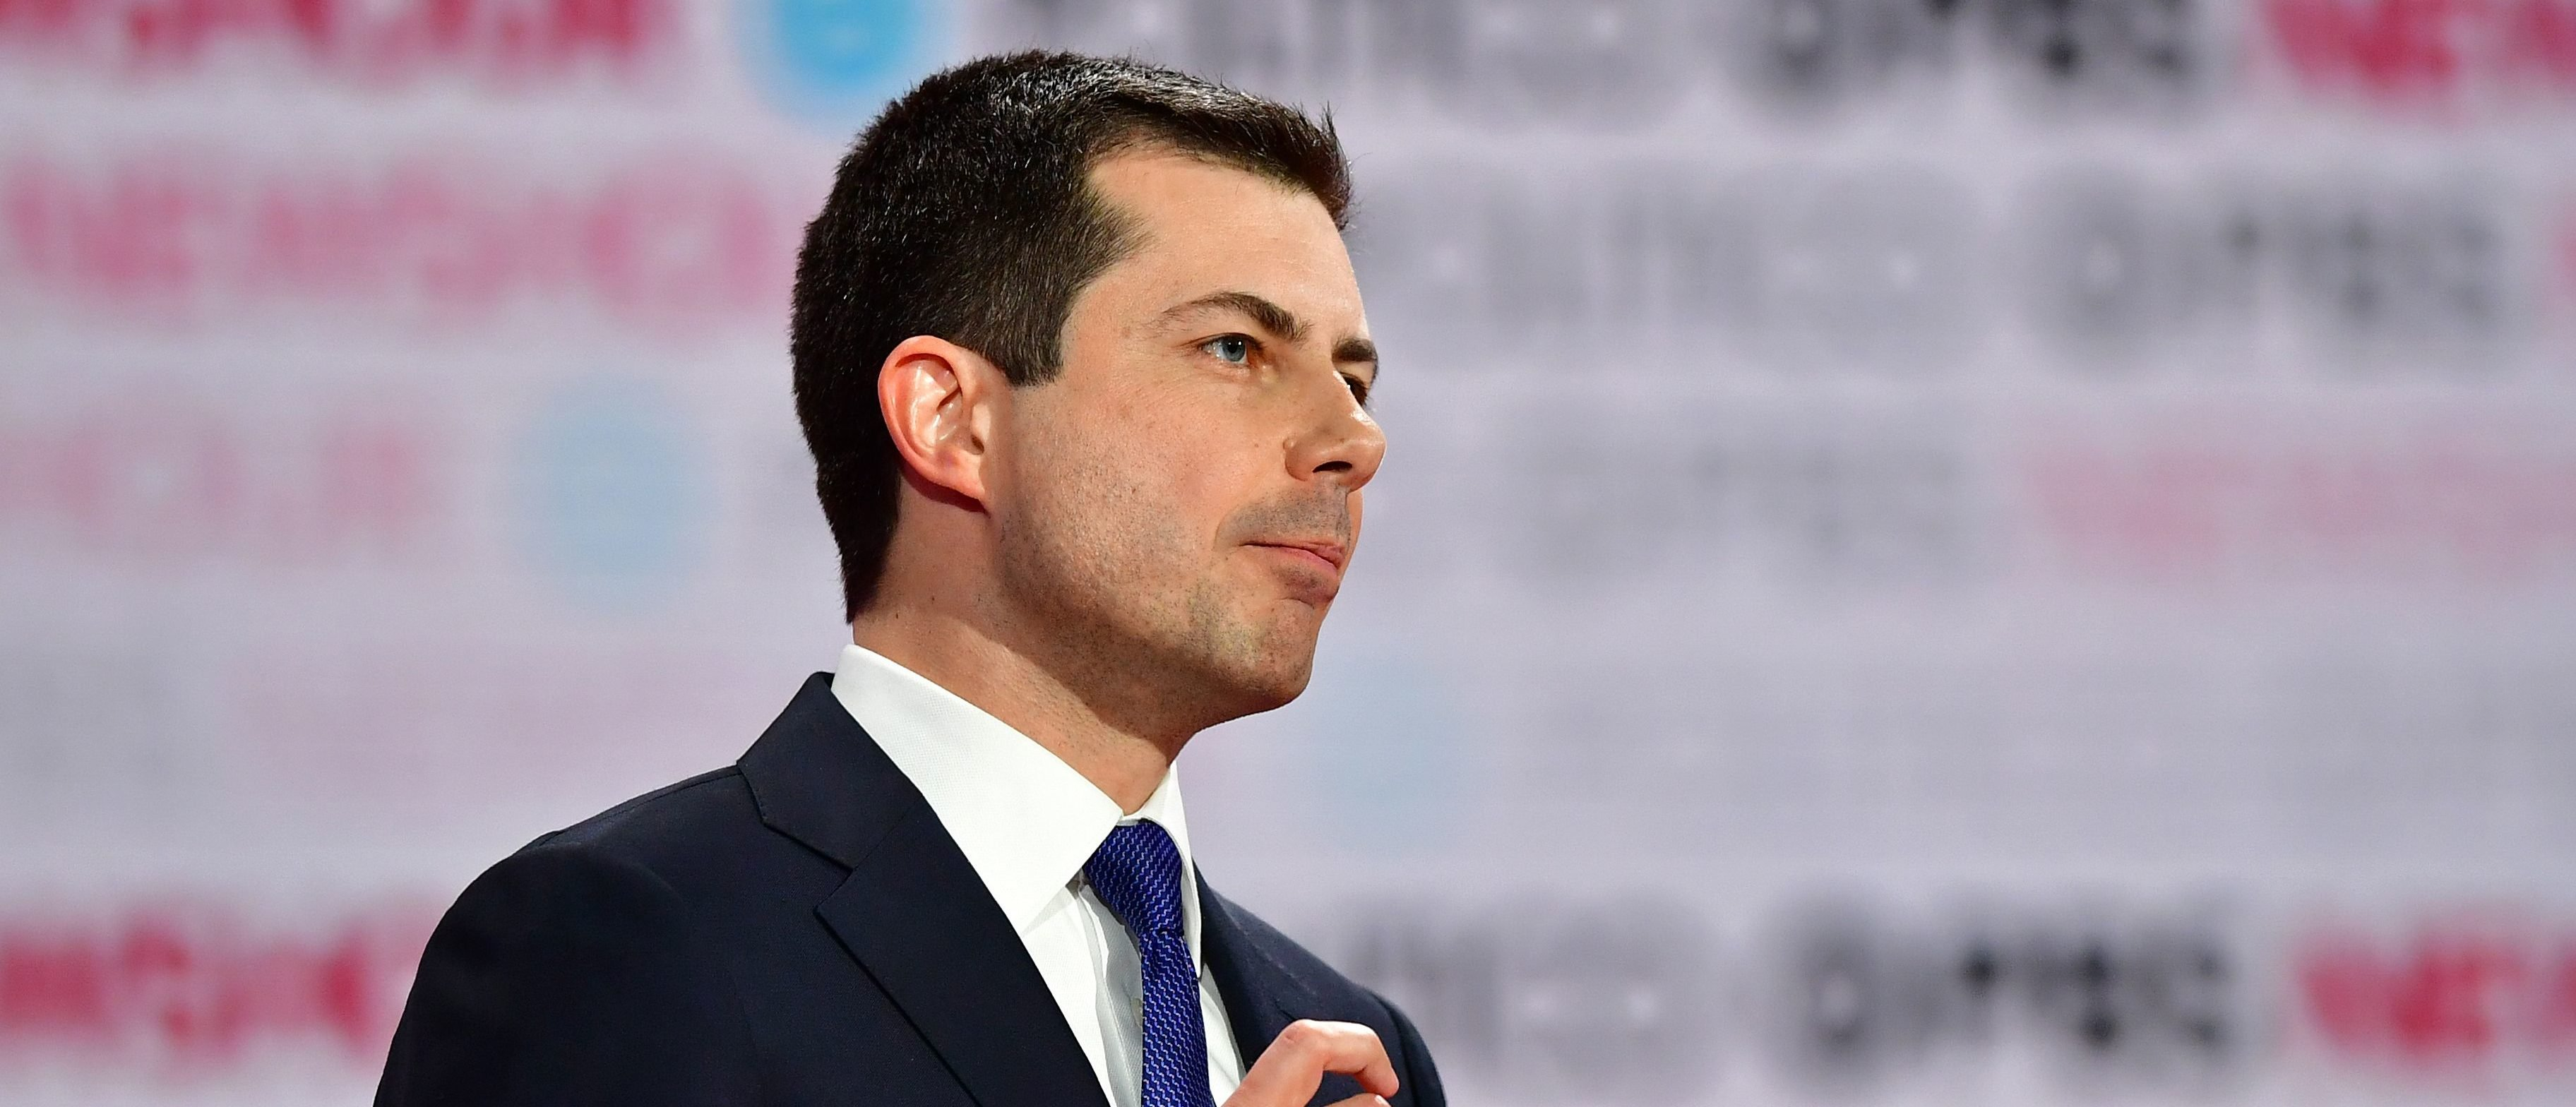 Democratic presidential hopeful Mayor of South Bend, Indiana, Pete Buttigieg speaks during the sixth Democratic primary debate of the 2020 presidential campaign season co-hosted by PBS NewsHour & Politico at Loyola Marymount University in Los Angeles, California on Dec. 19, 2019. (Photo by Frederic J. Brown / AFP) (Photo by FREDERIC J. BROWN/AFP via Getty Images)